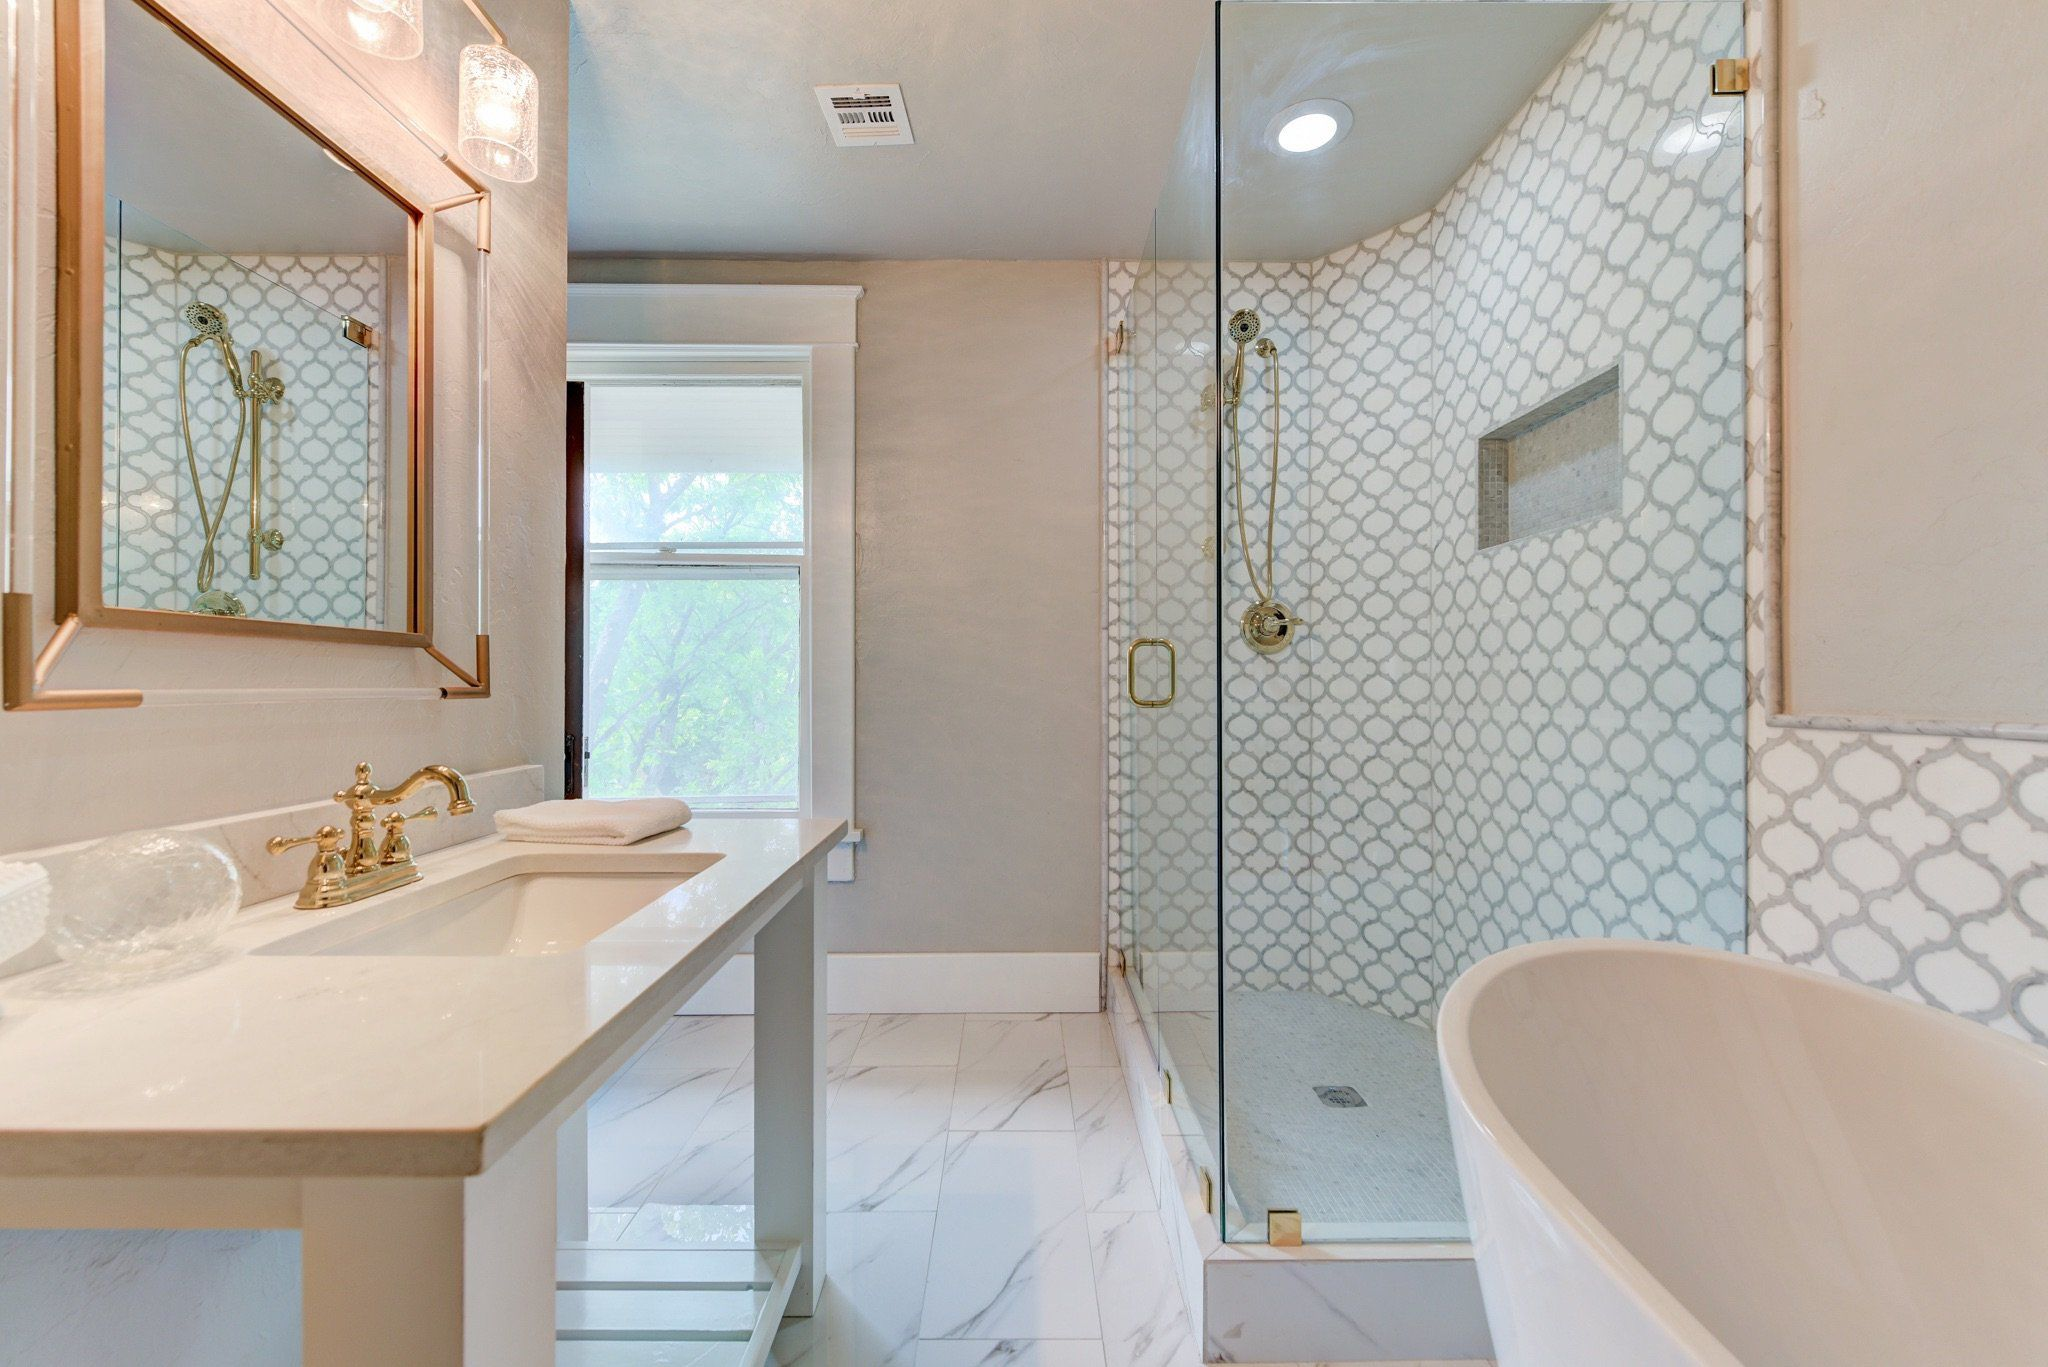 Shower Bathroom Tile Ideas Mosaic Tiles Arabesque Waterjet